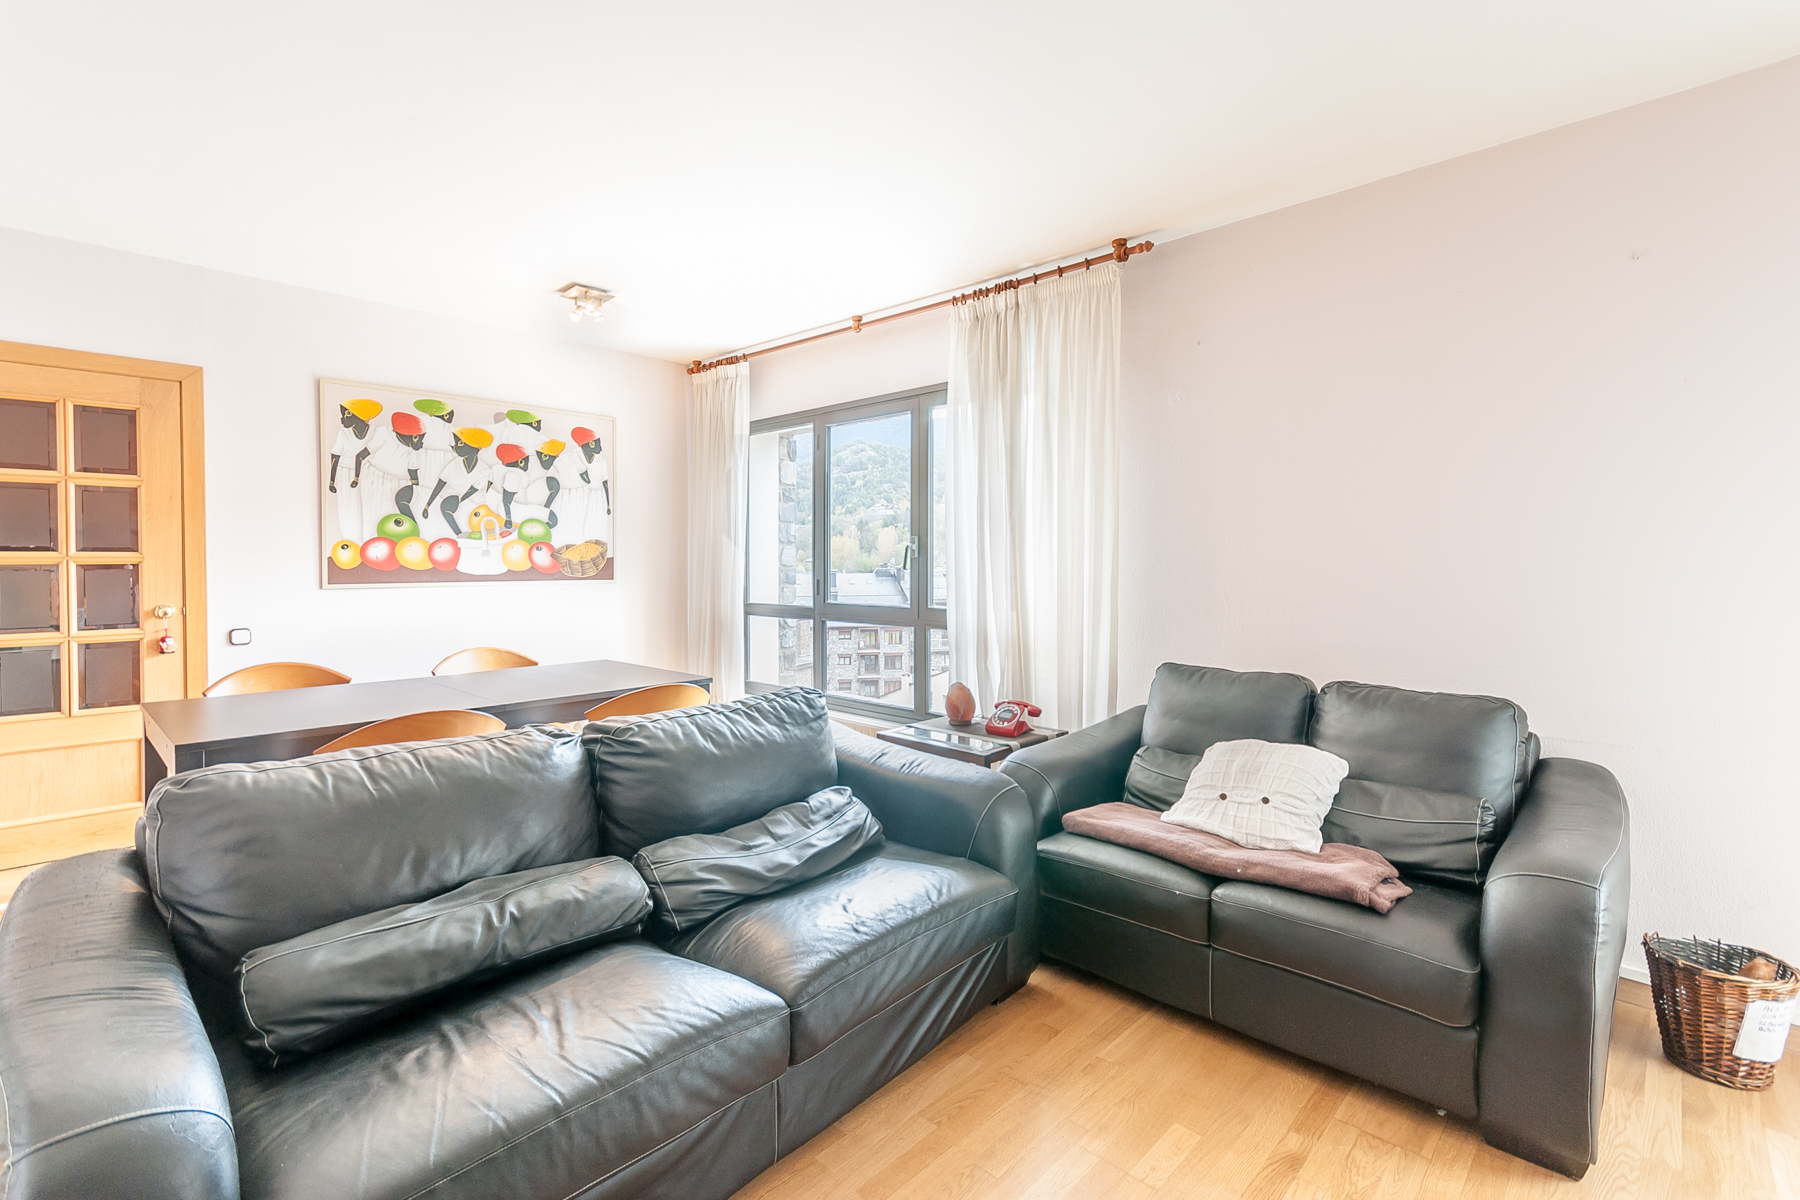 Квартира для того Продажа на Flat for sale in La Massana La Massana, La Massana, AD400 Andorra